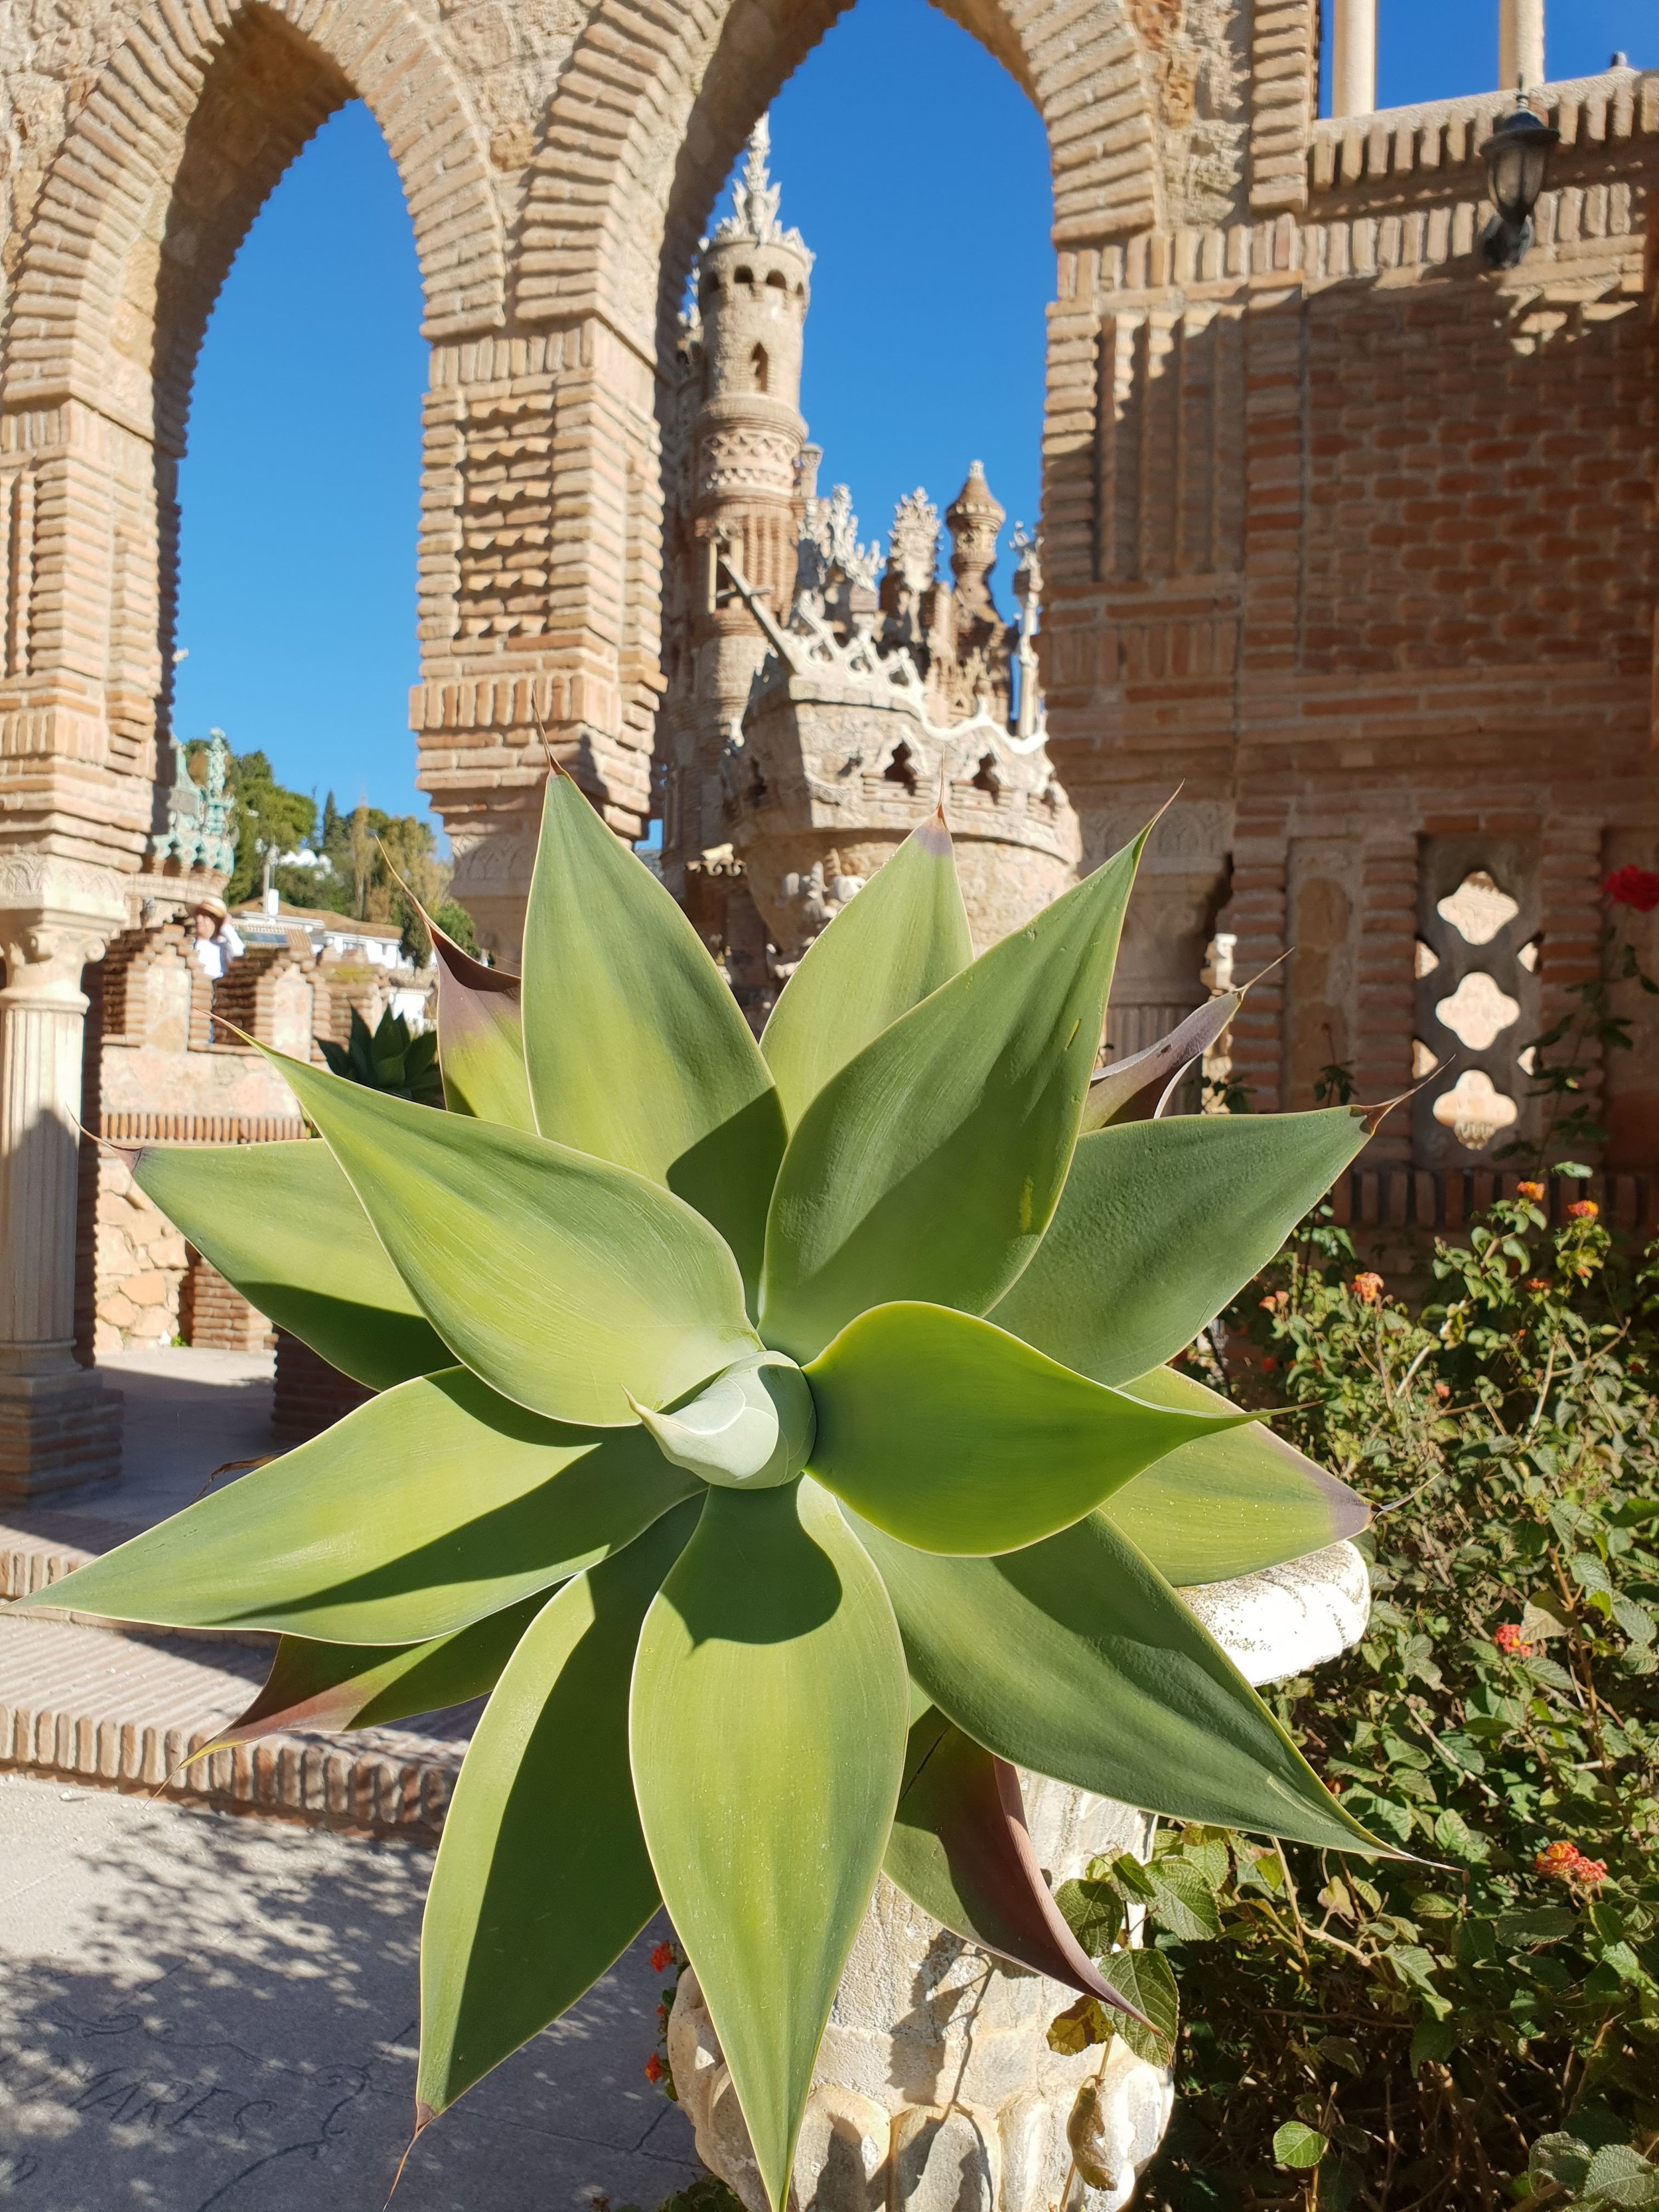 The plant life and views surrounding the 'castle' are intriguing and incredibly photogenic too!